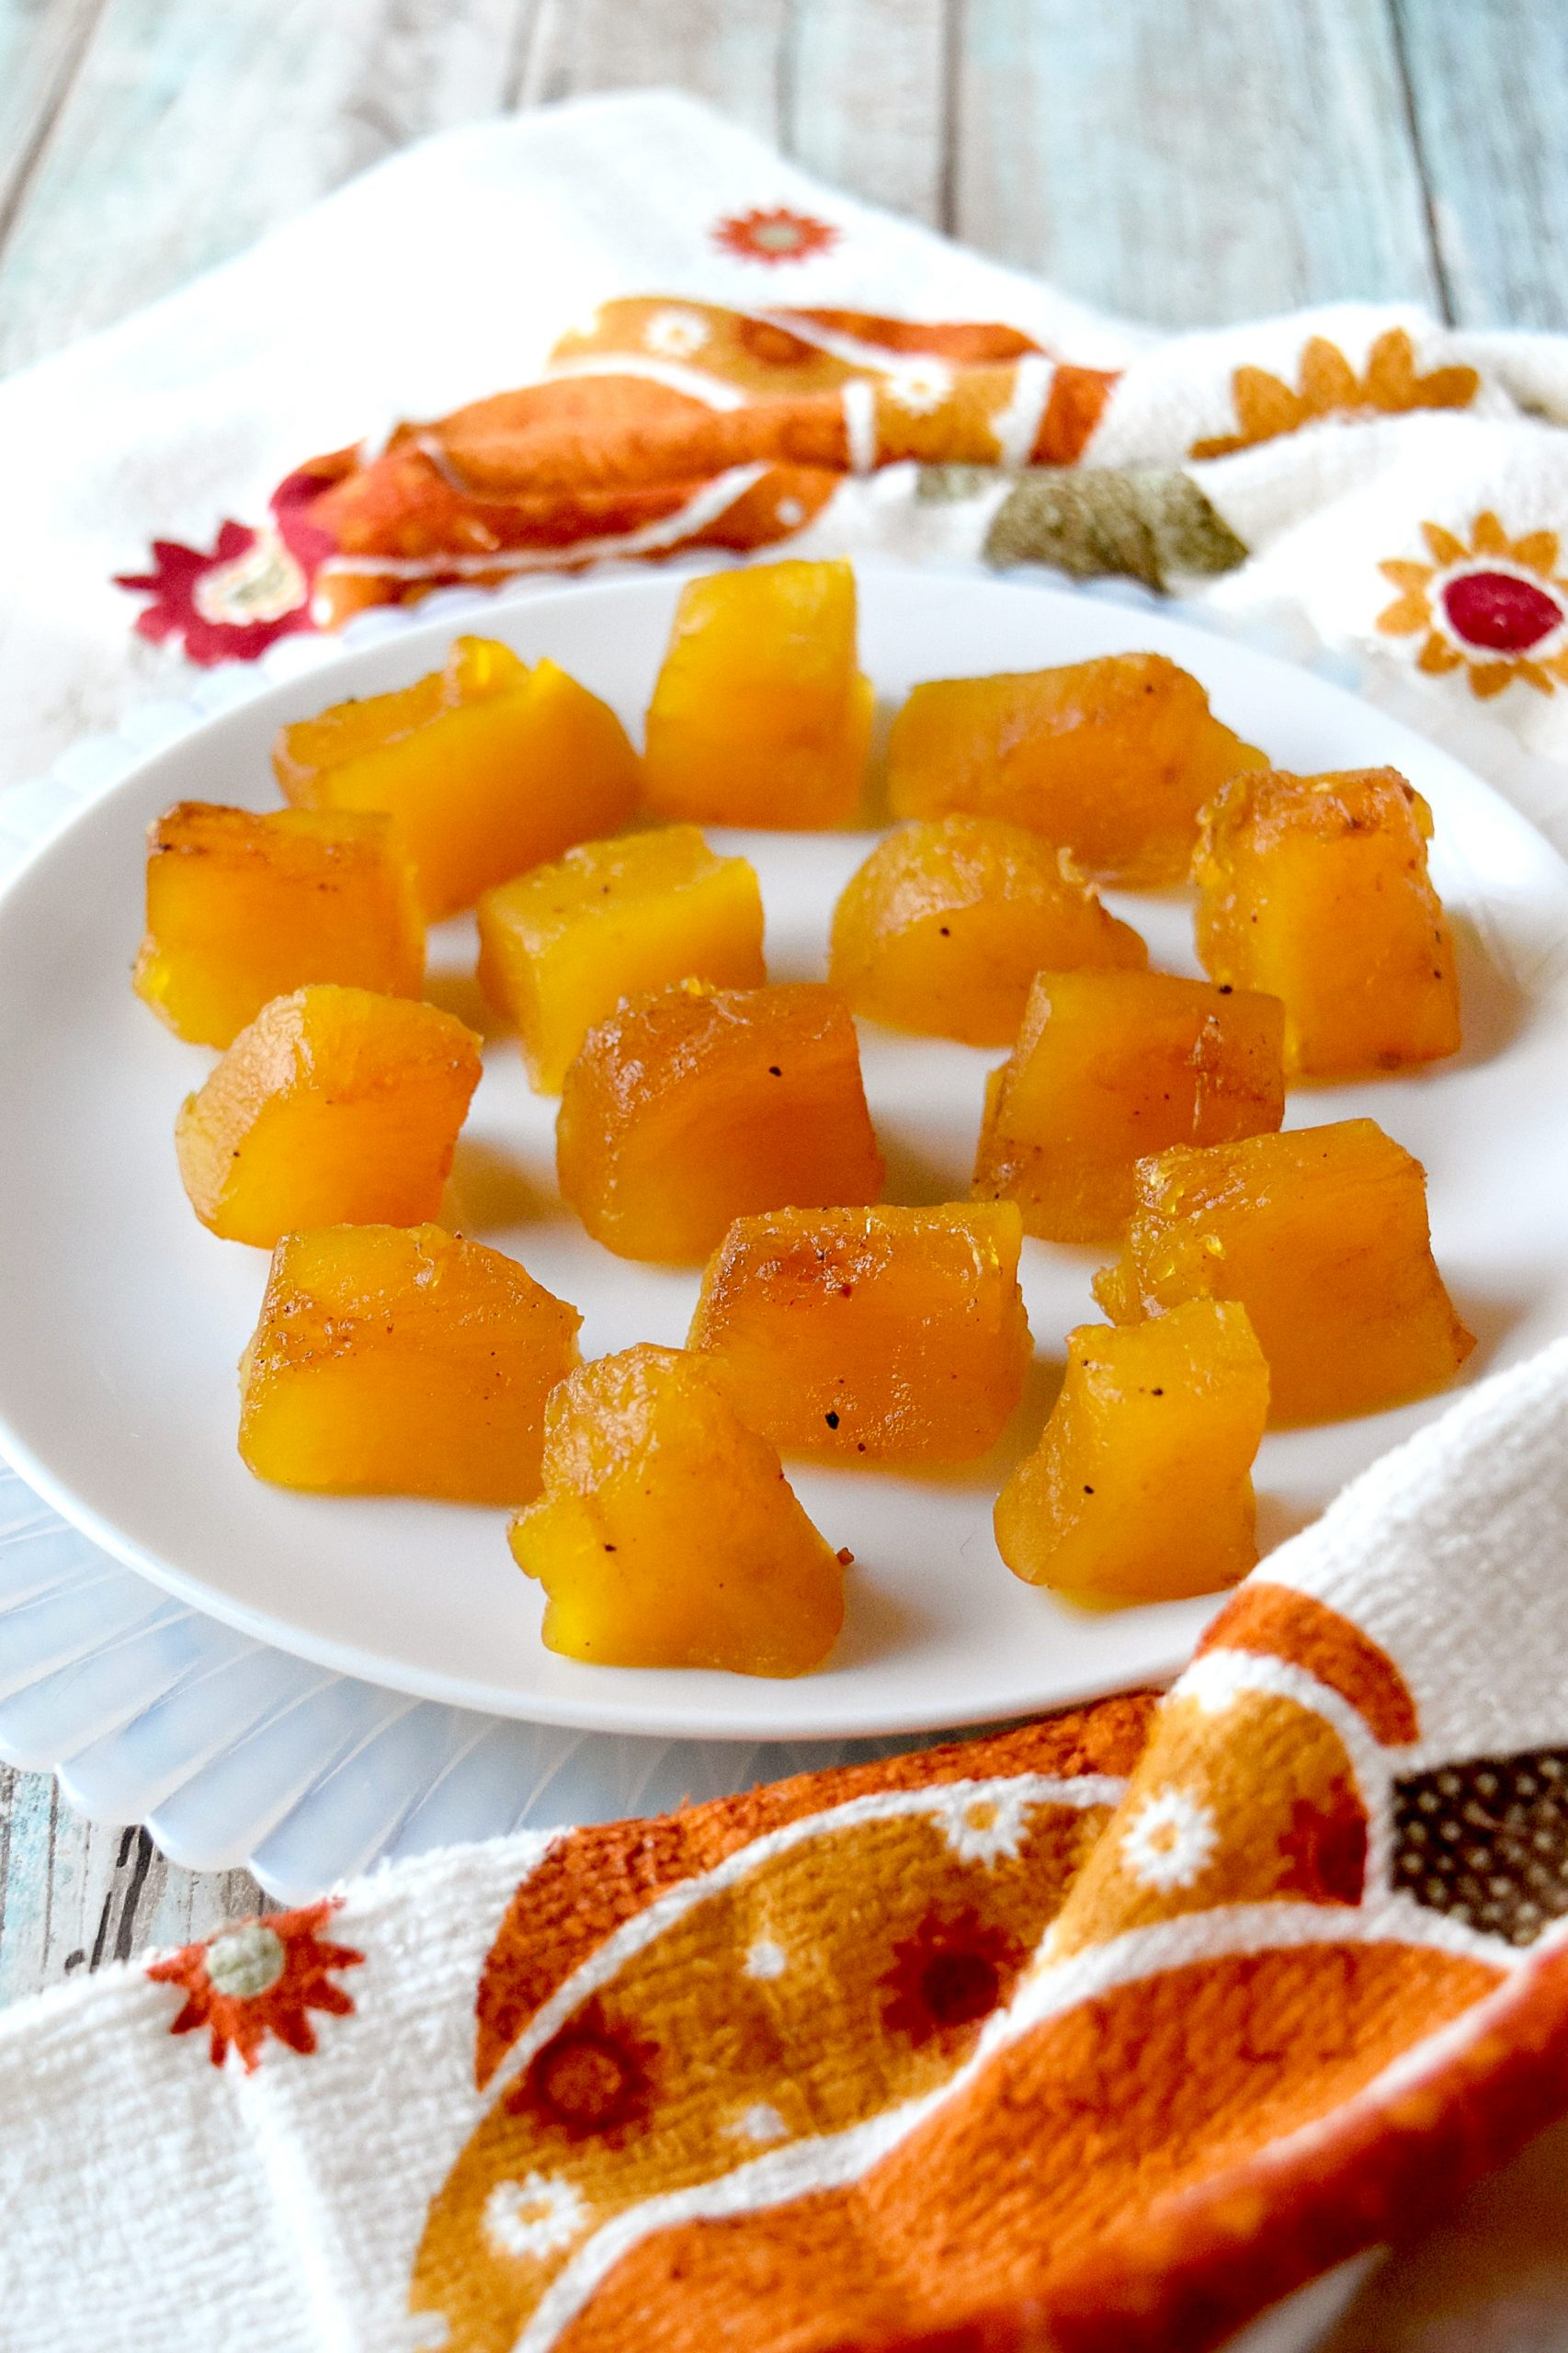 Candied Pumpkin Pie tastes like a bite of pie without all the calories! This is simply pumpkin, water, sugar, and spices #PumpkinWeek